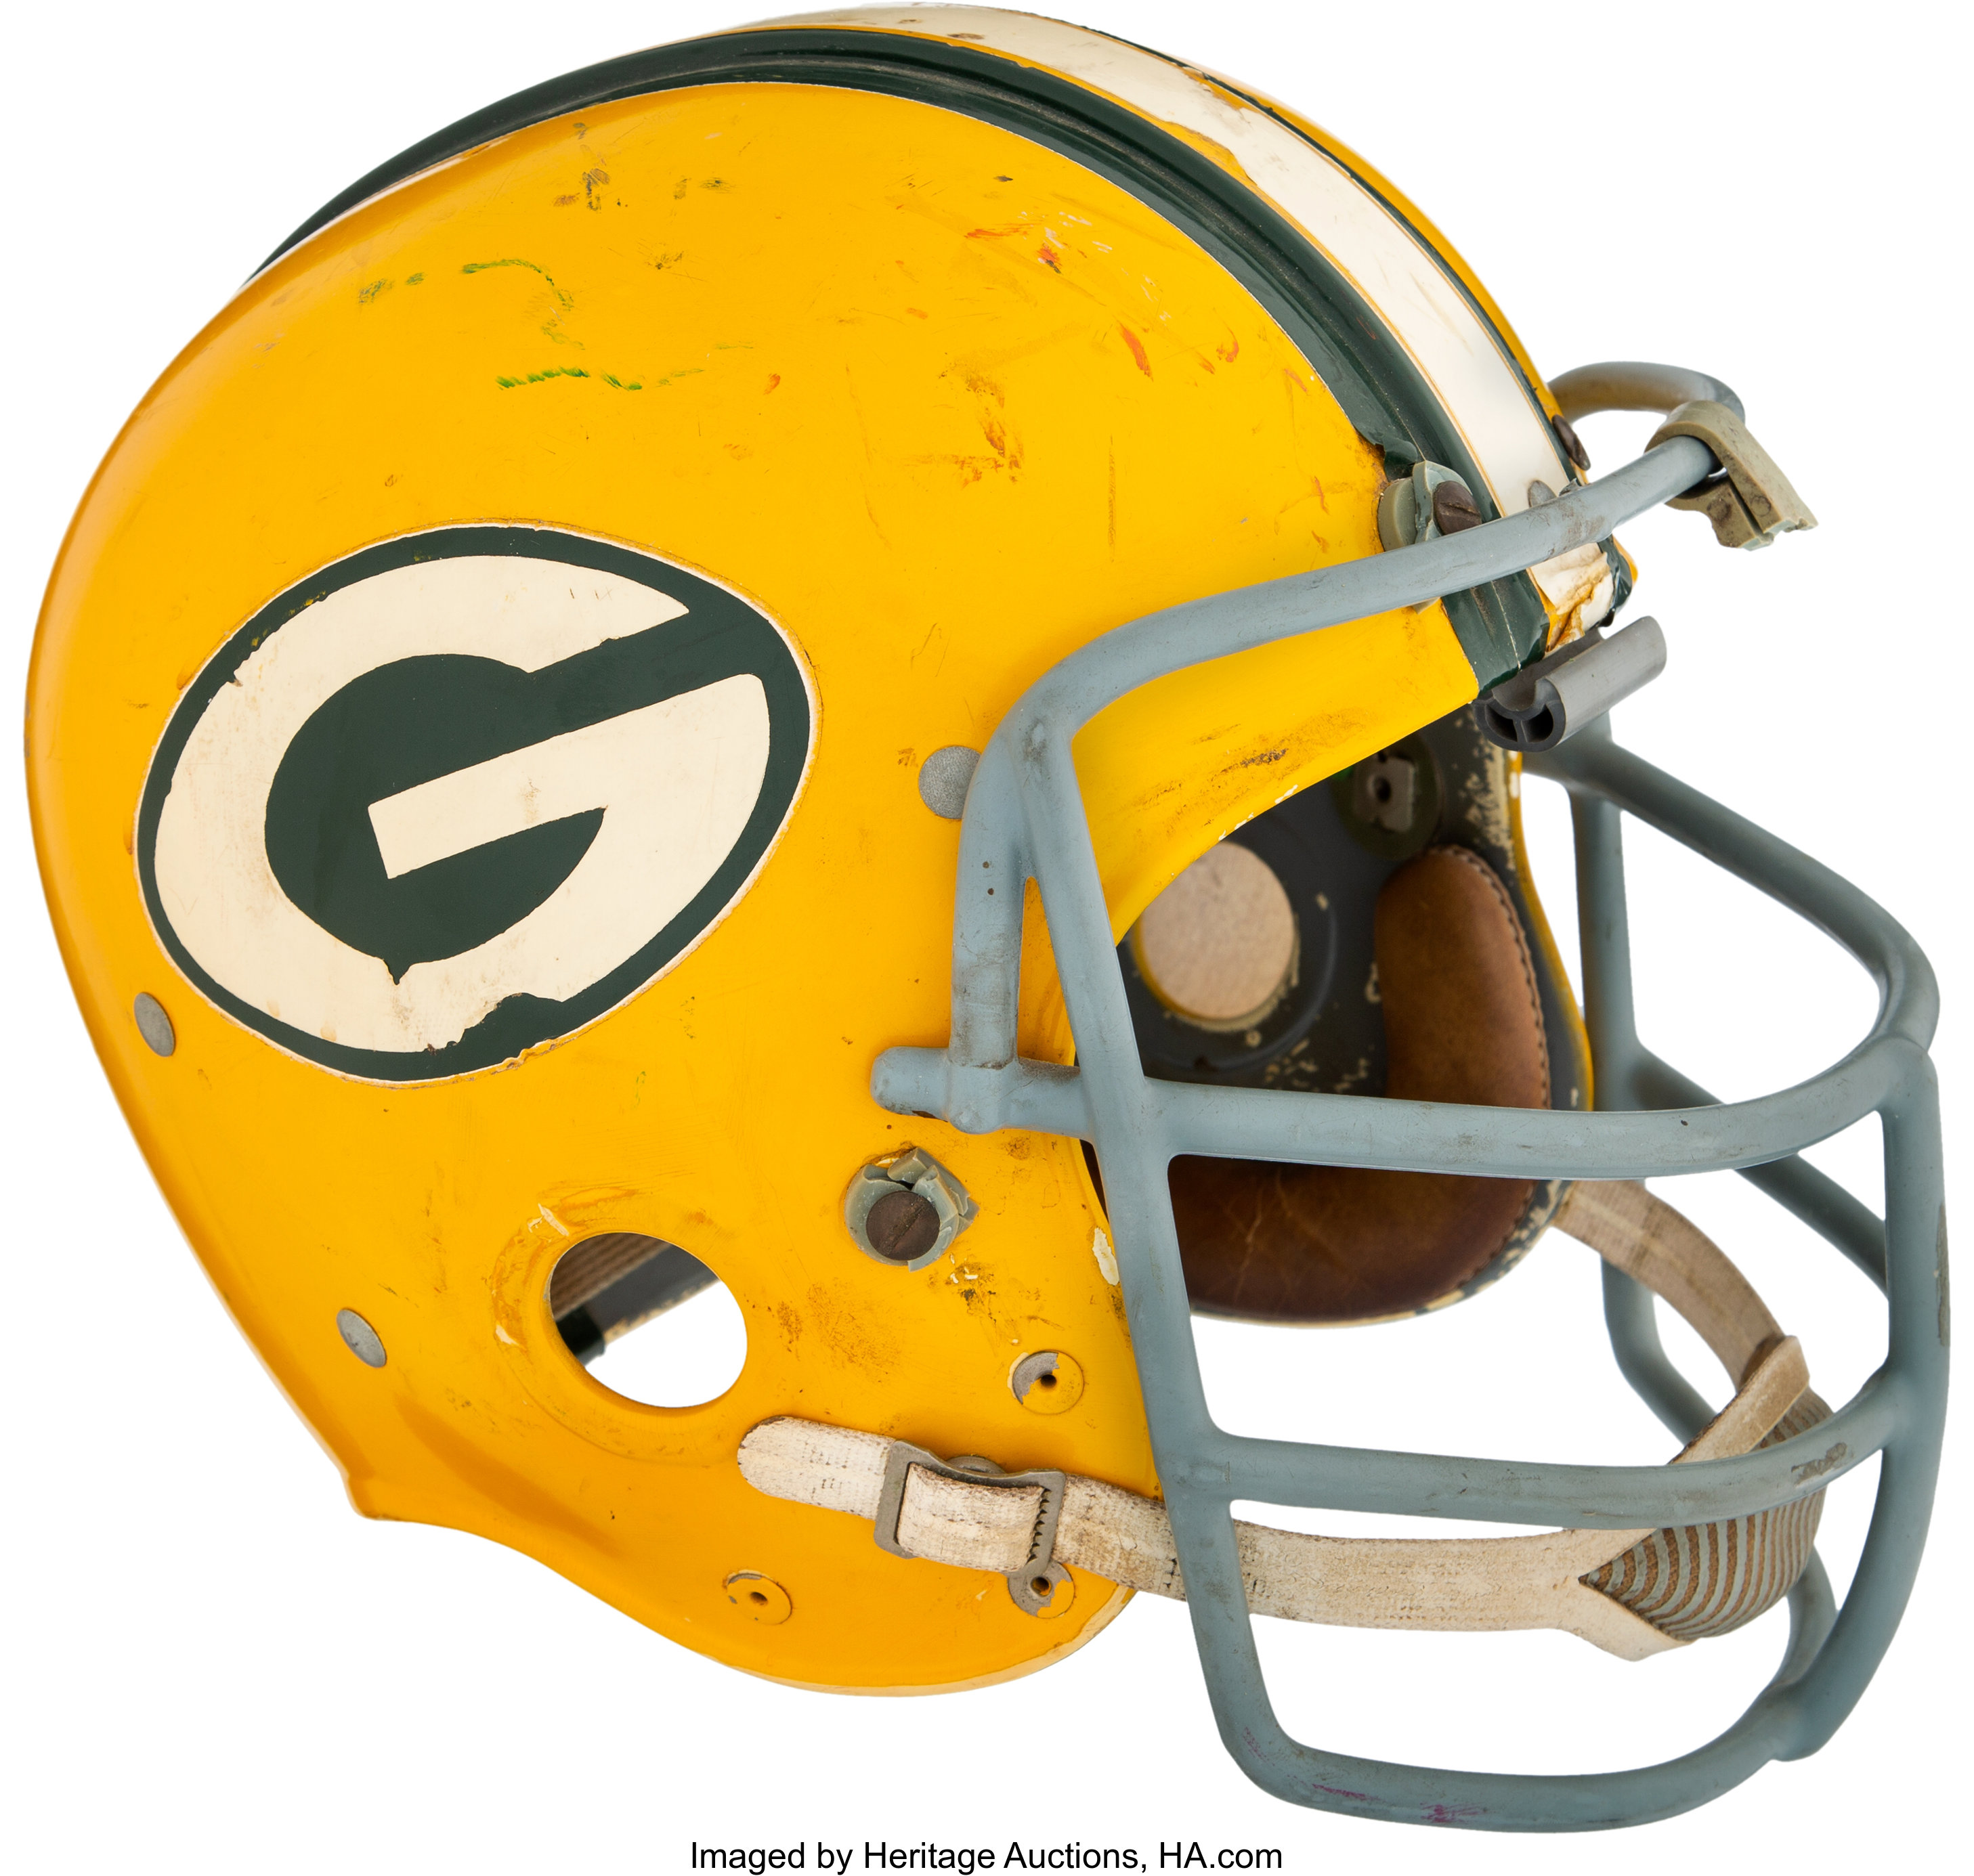 1967 69 Dave Robinson Game Worn Green Bay Packers Helmet Photo Lot 80087 Heritage Auctions